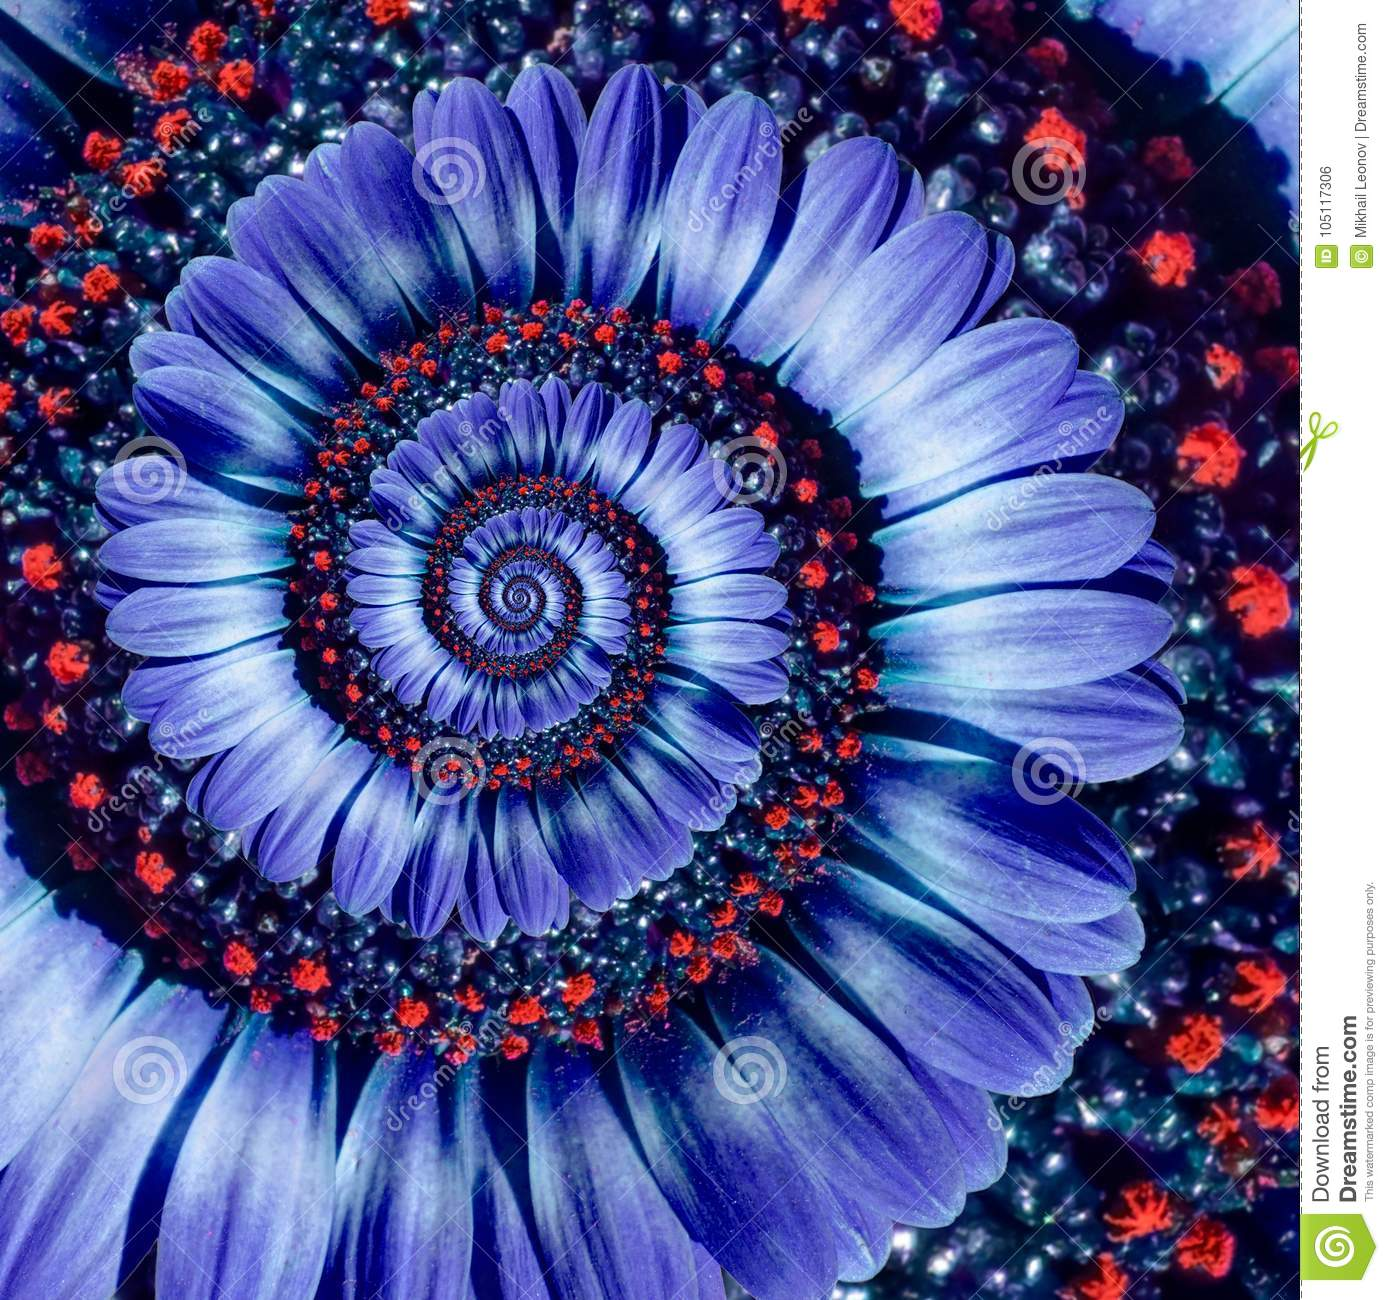 Blue camomile daisy flower spiral abstract fractal effect pattern background. Blue violet navy flower spiral abstract pattern